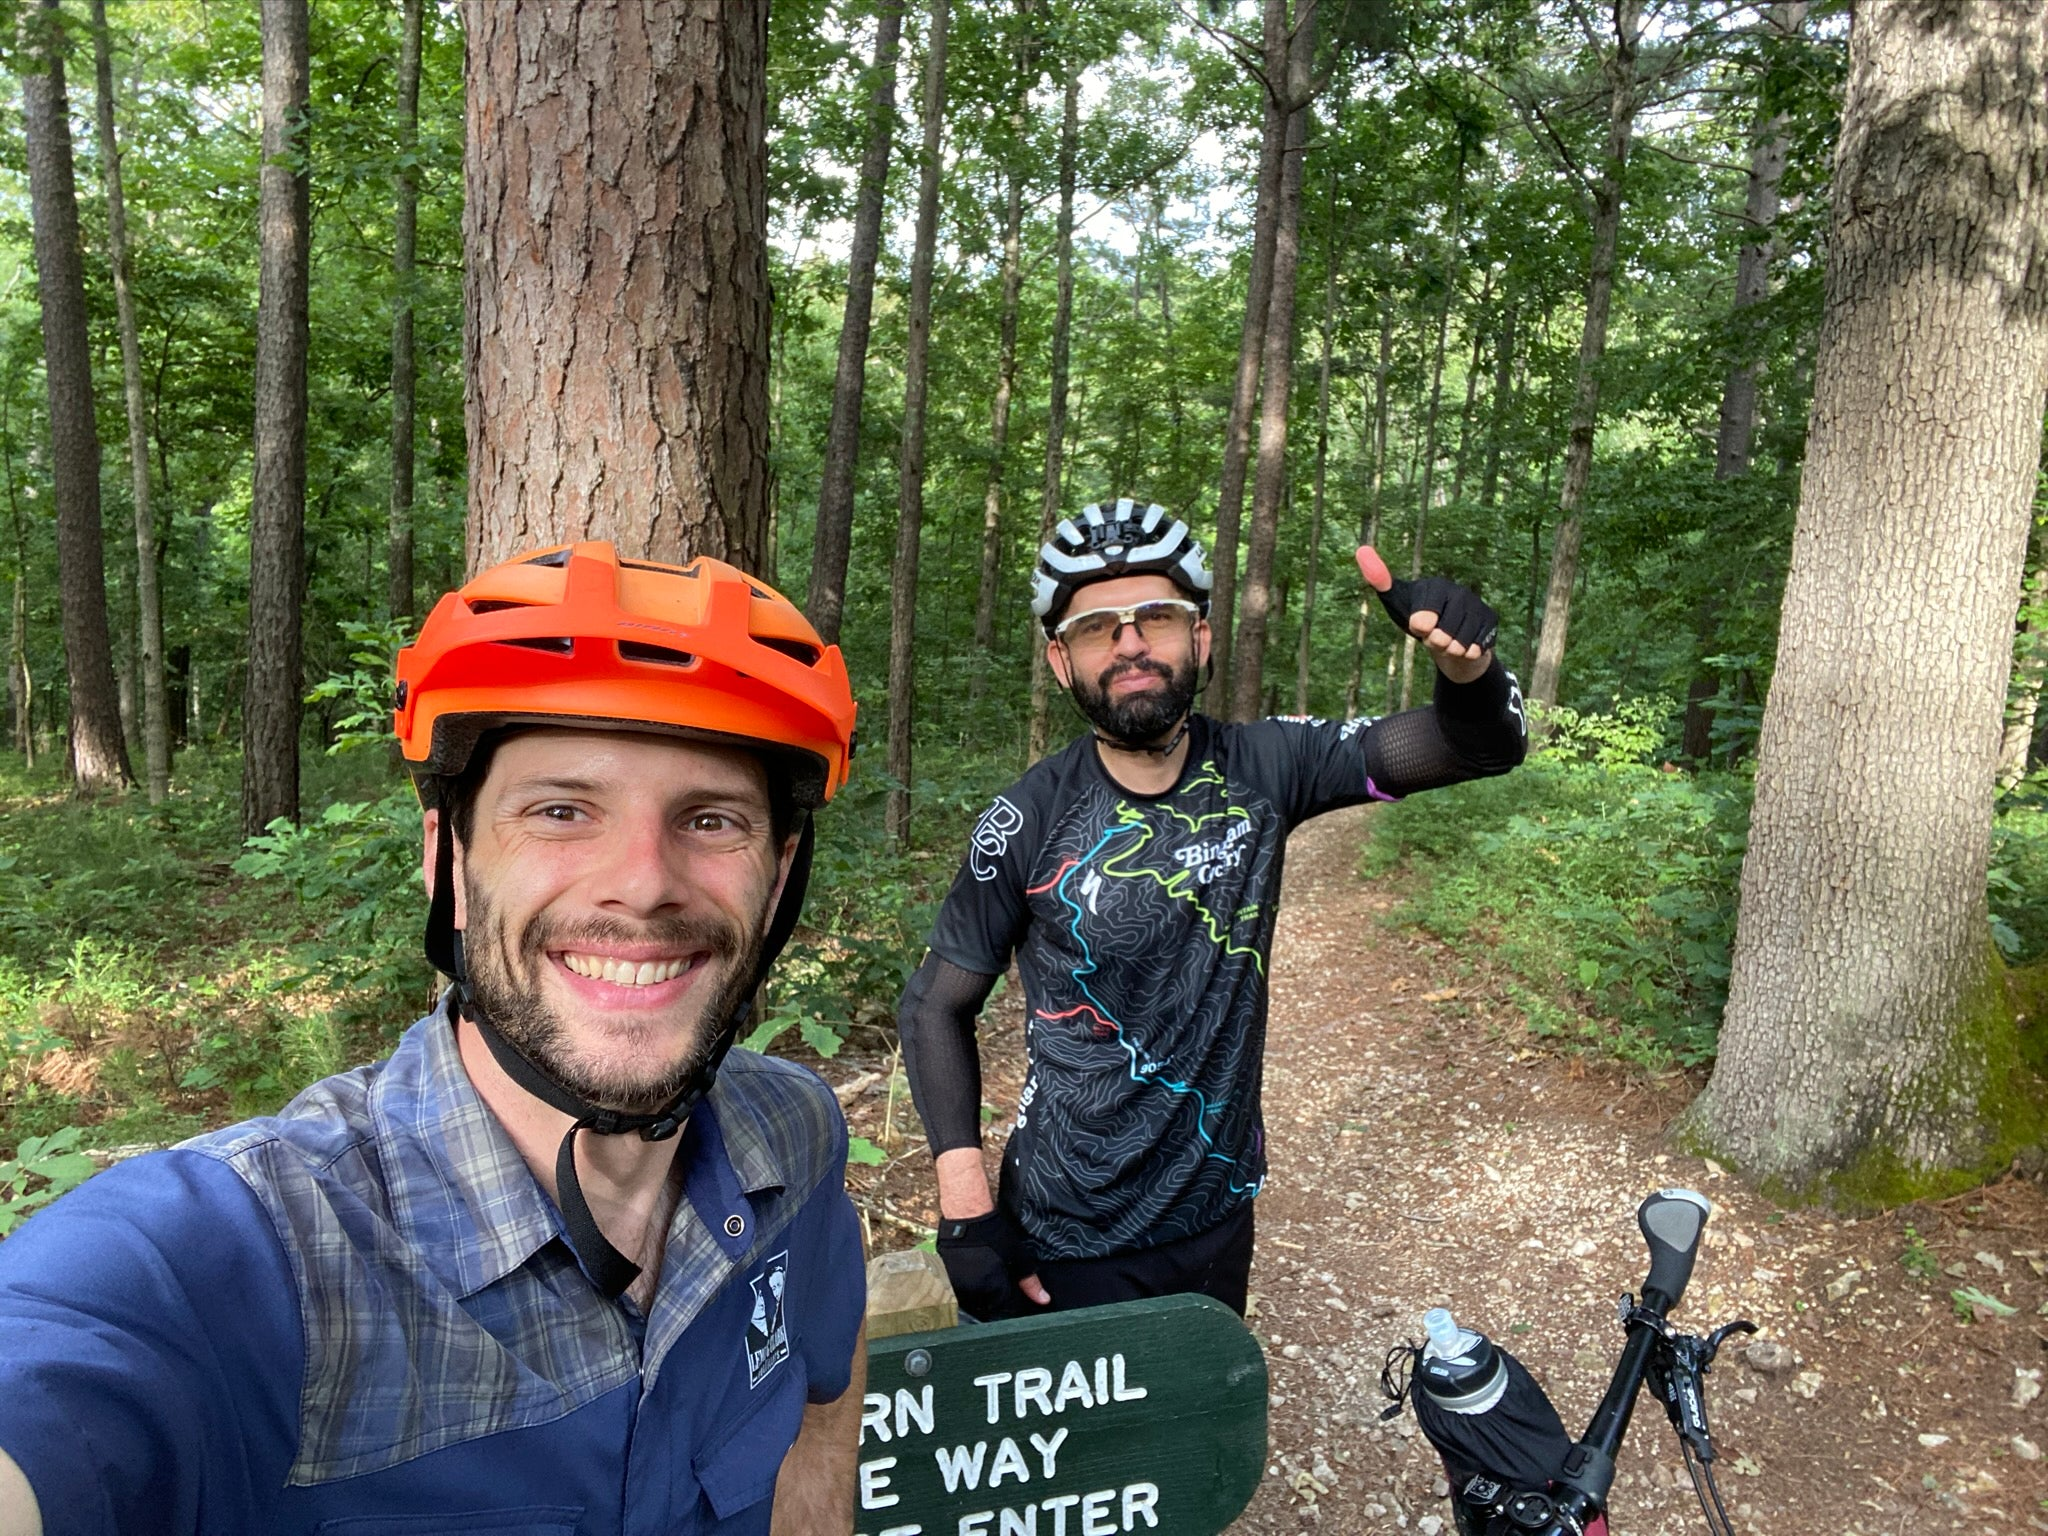 Mountain biking fun at Hobbs State Park Monument Trails downhill only section